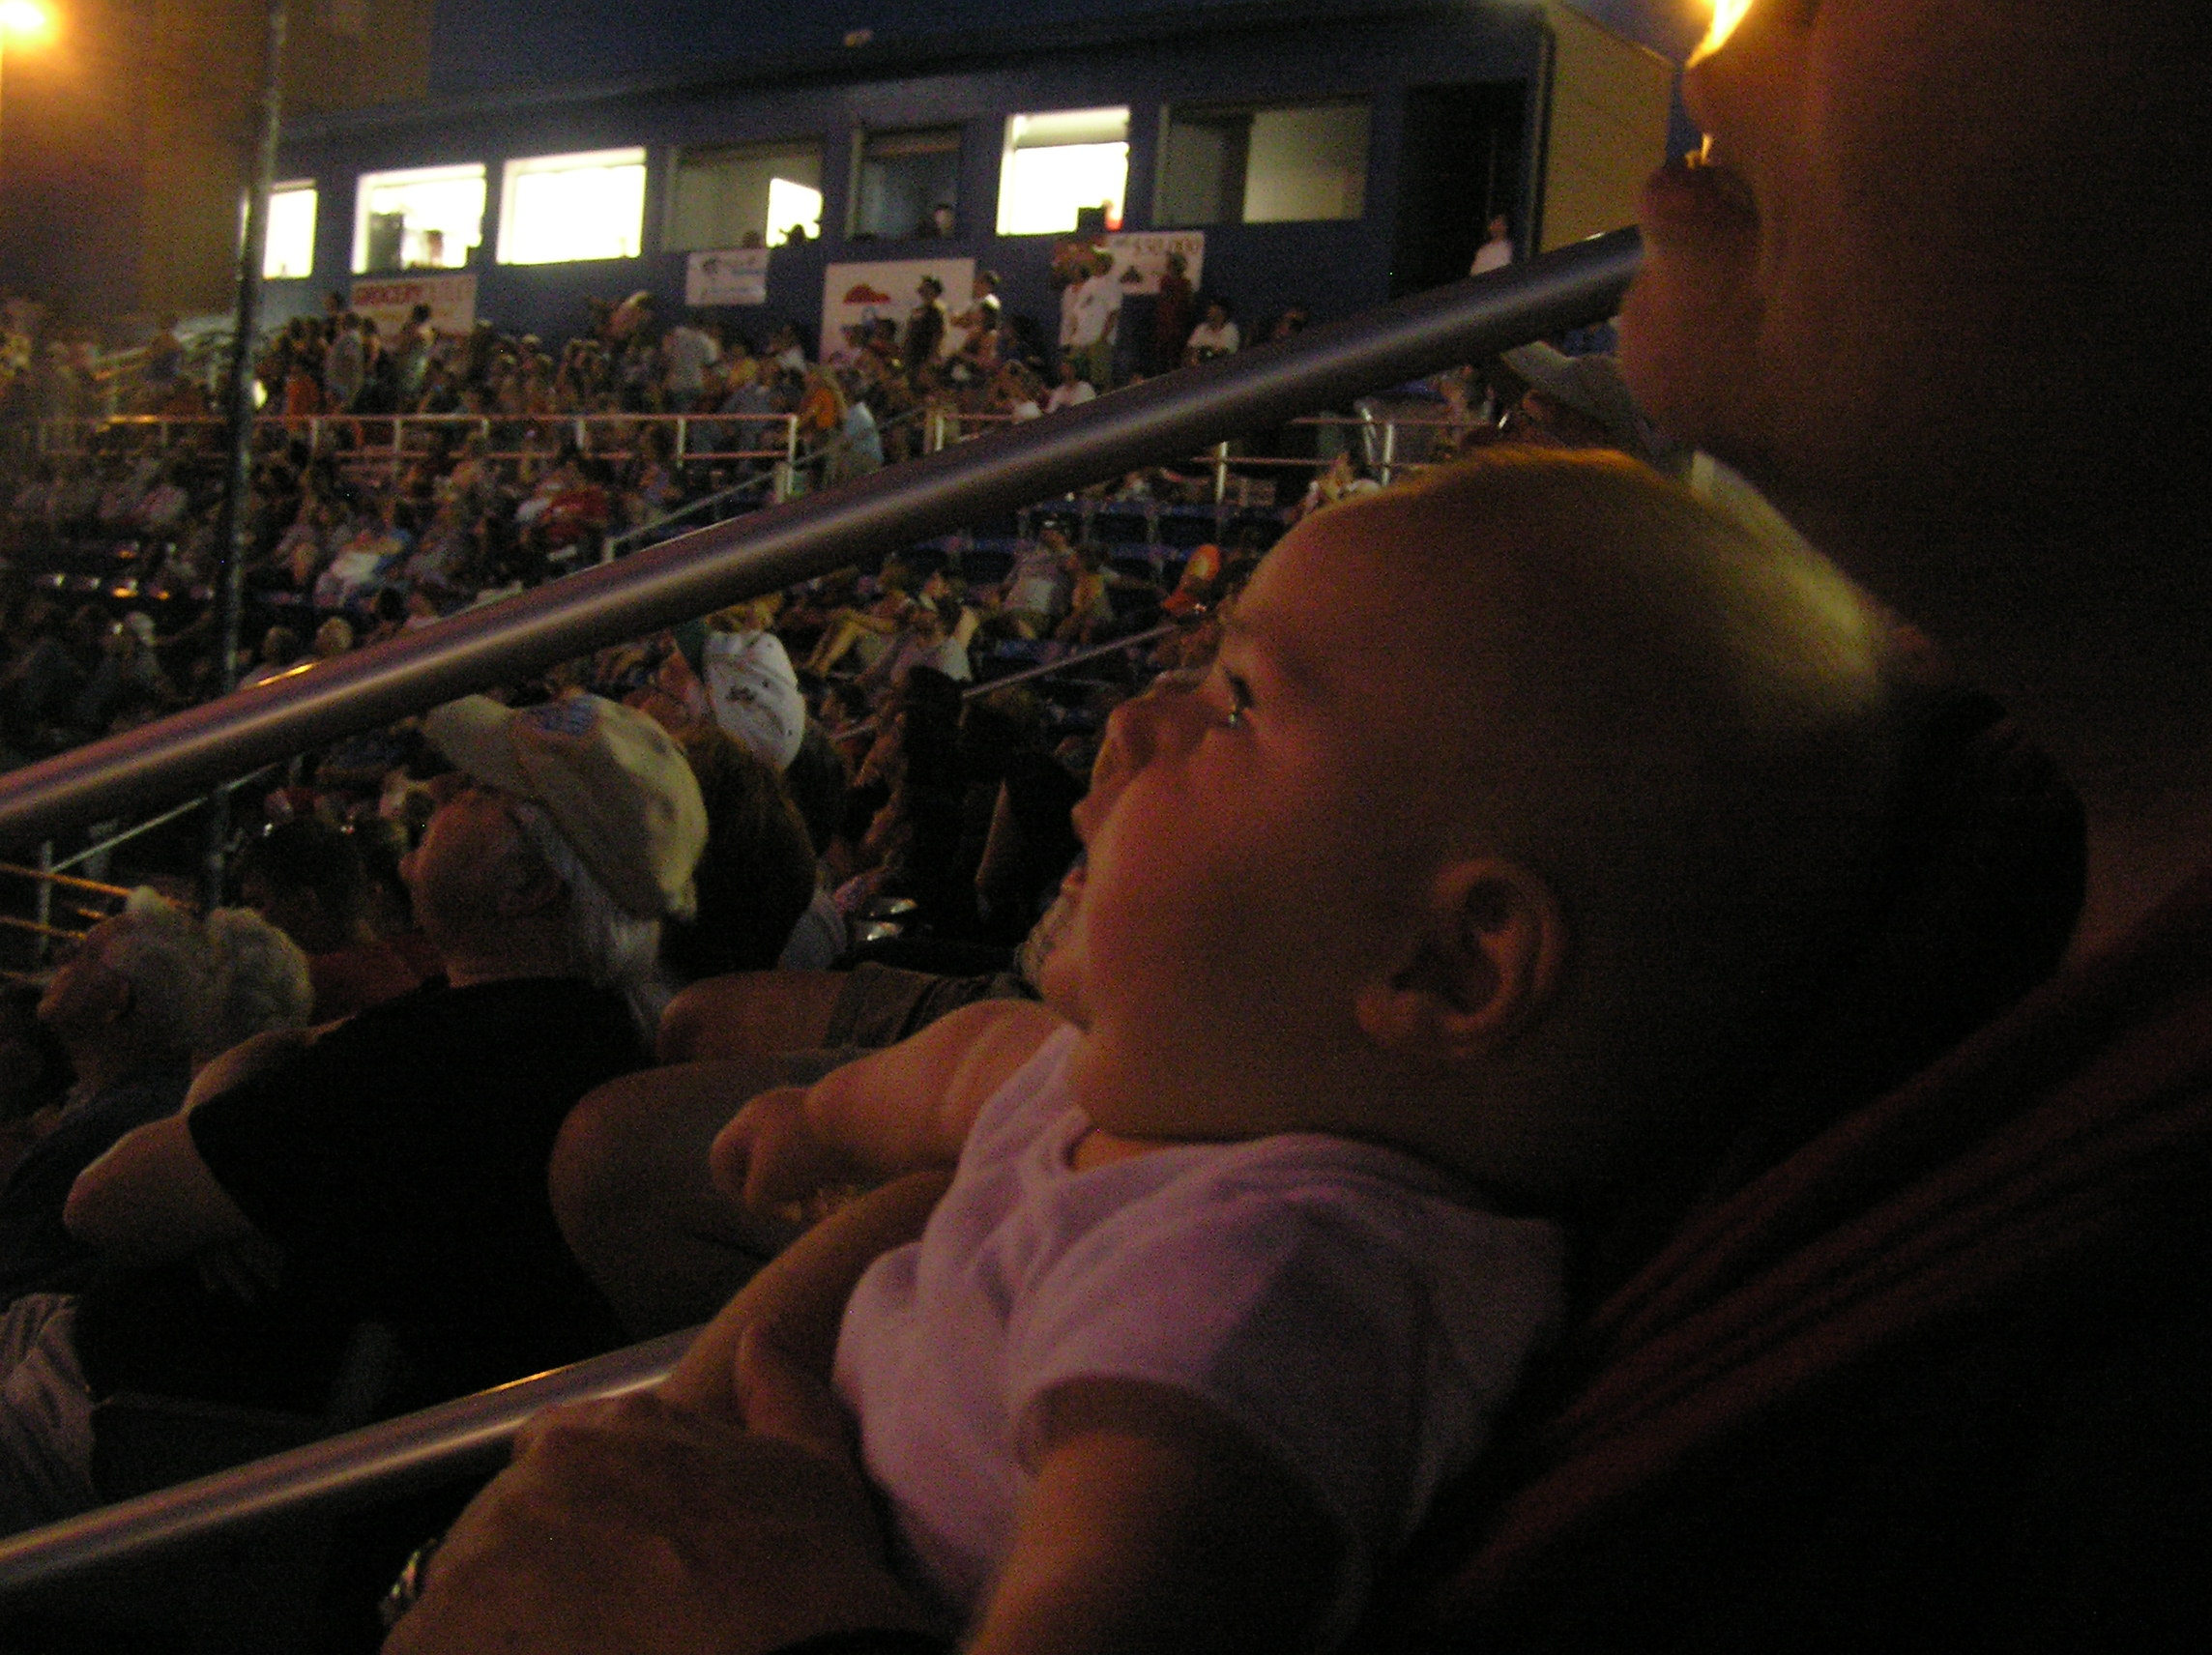 yakimastevenfireworks